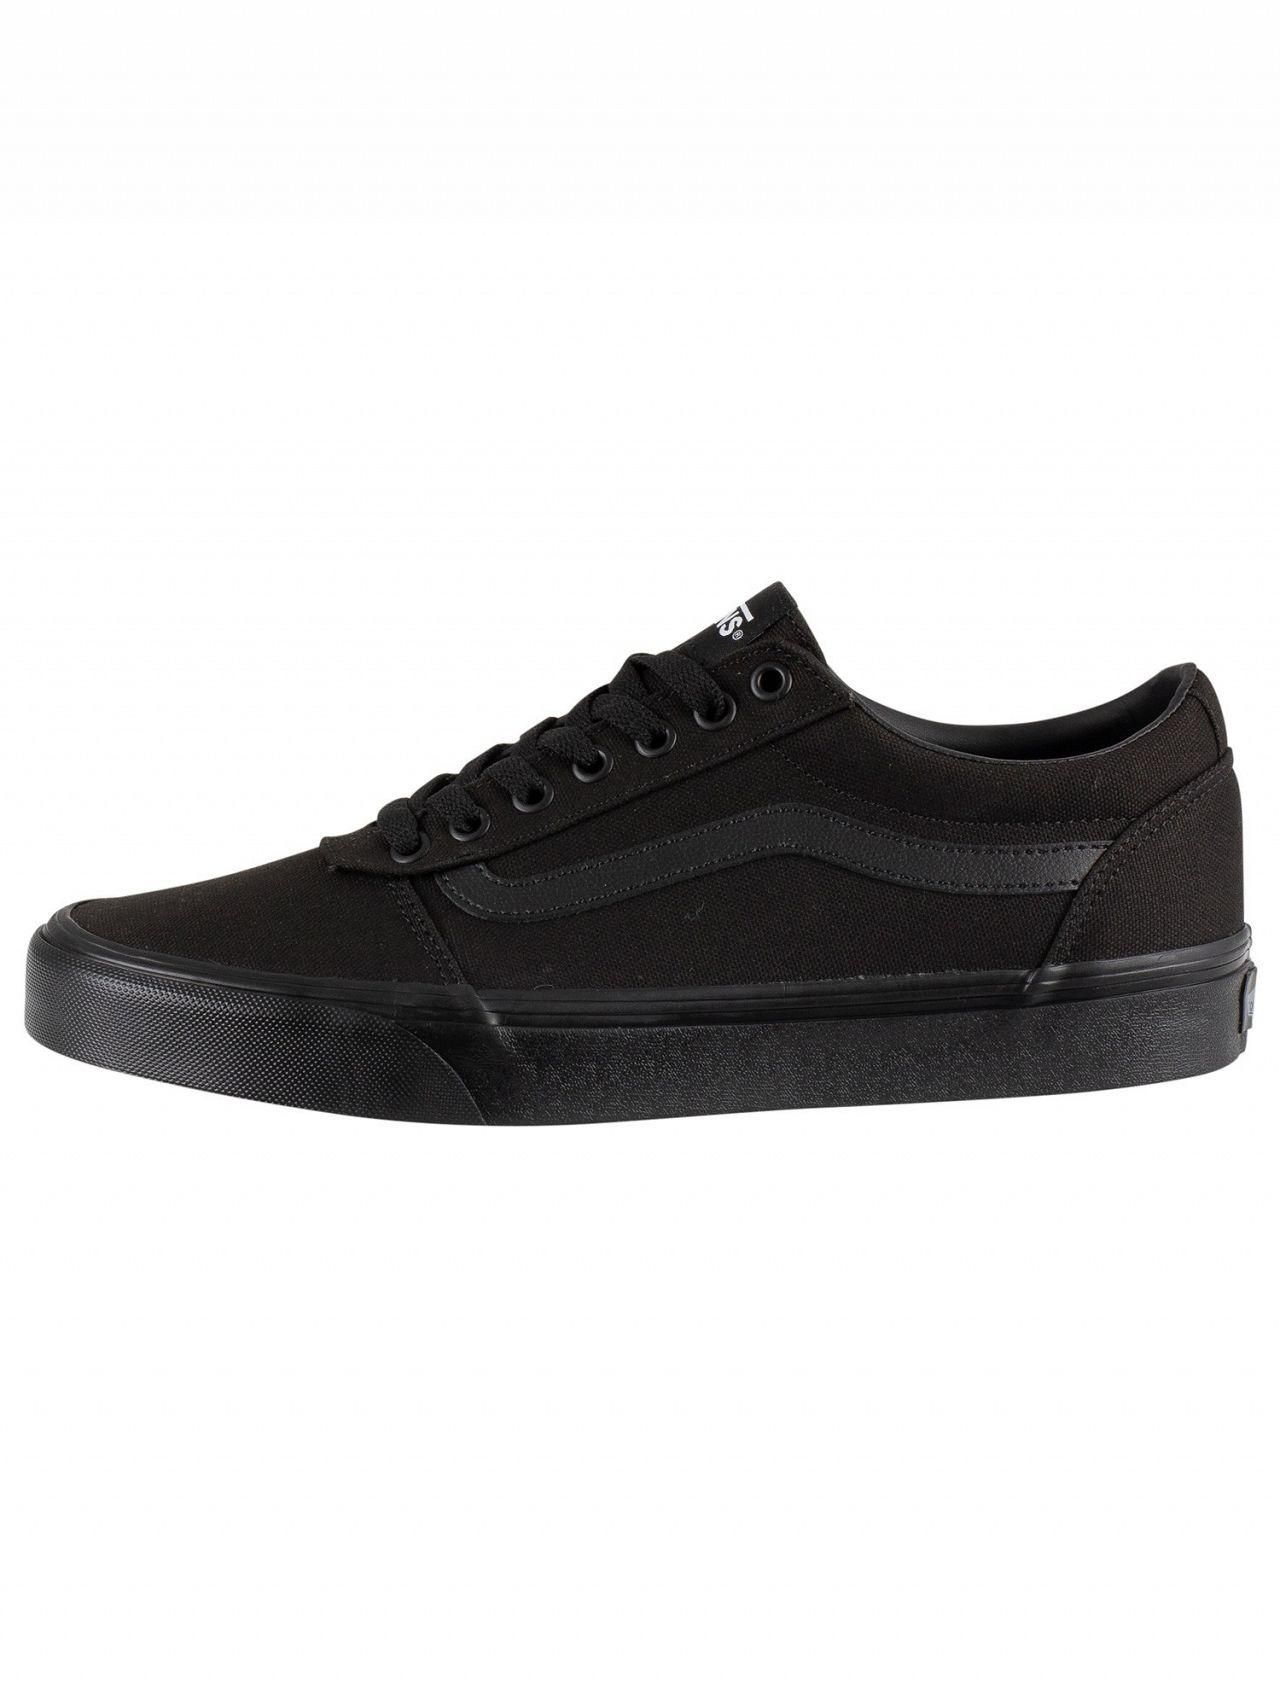 7071f26ae4 Lyst - Vans Black black Ward Canvas Trainers in Black for Men